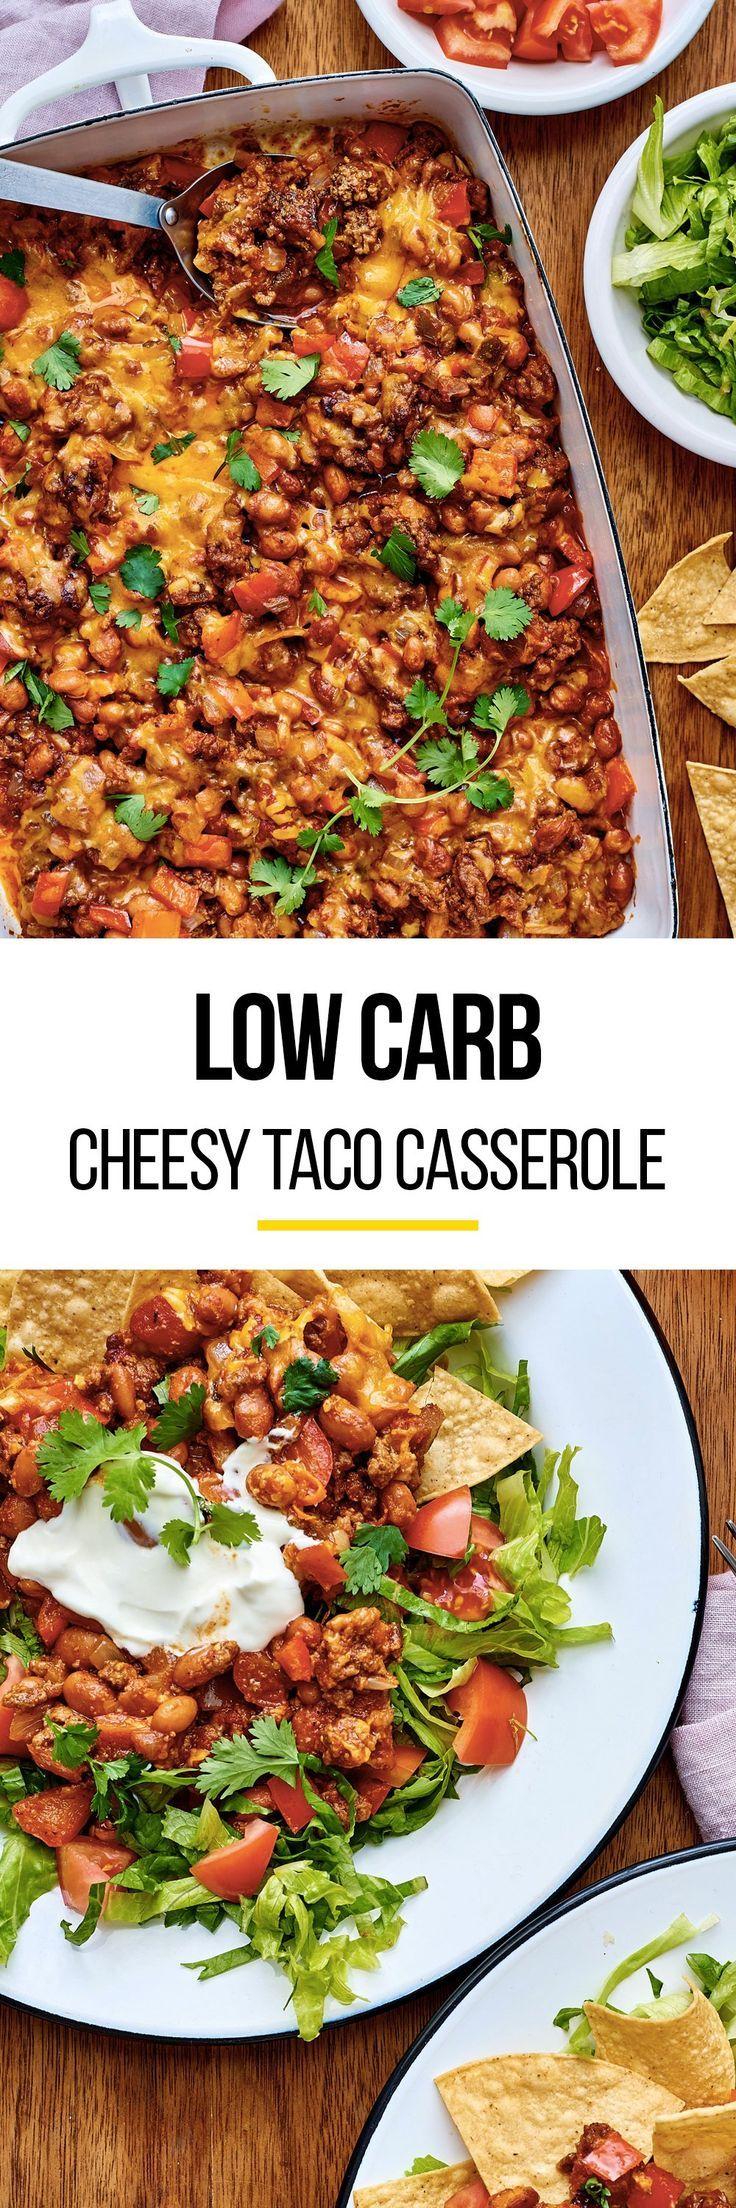 Ground Beef Taco Casserole Recipe. This comfort food meal is perfect for cold weather in the winter or fall. Need Taco Tuesday or quick weeknight recipes and ideas? This easy healthy and protein packed meal is one of the tastiest casseroles for dinner. Families of adults and kids love this simple meaty main! You'll need ground beef, onion, red bell pepper, garlic, pinto beans, spices, and tomato salsa. Low carb!